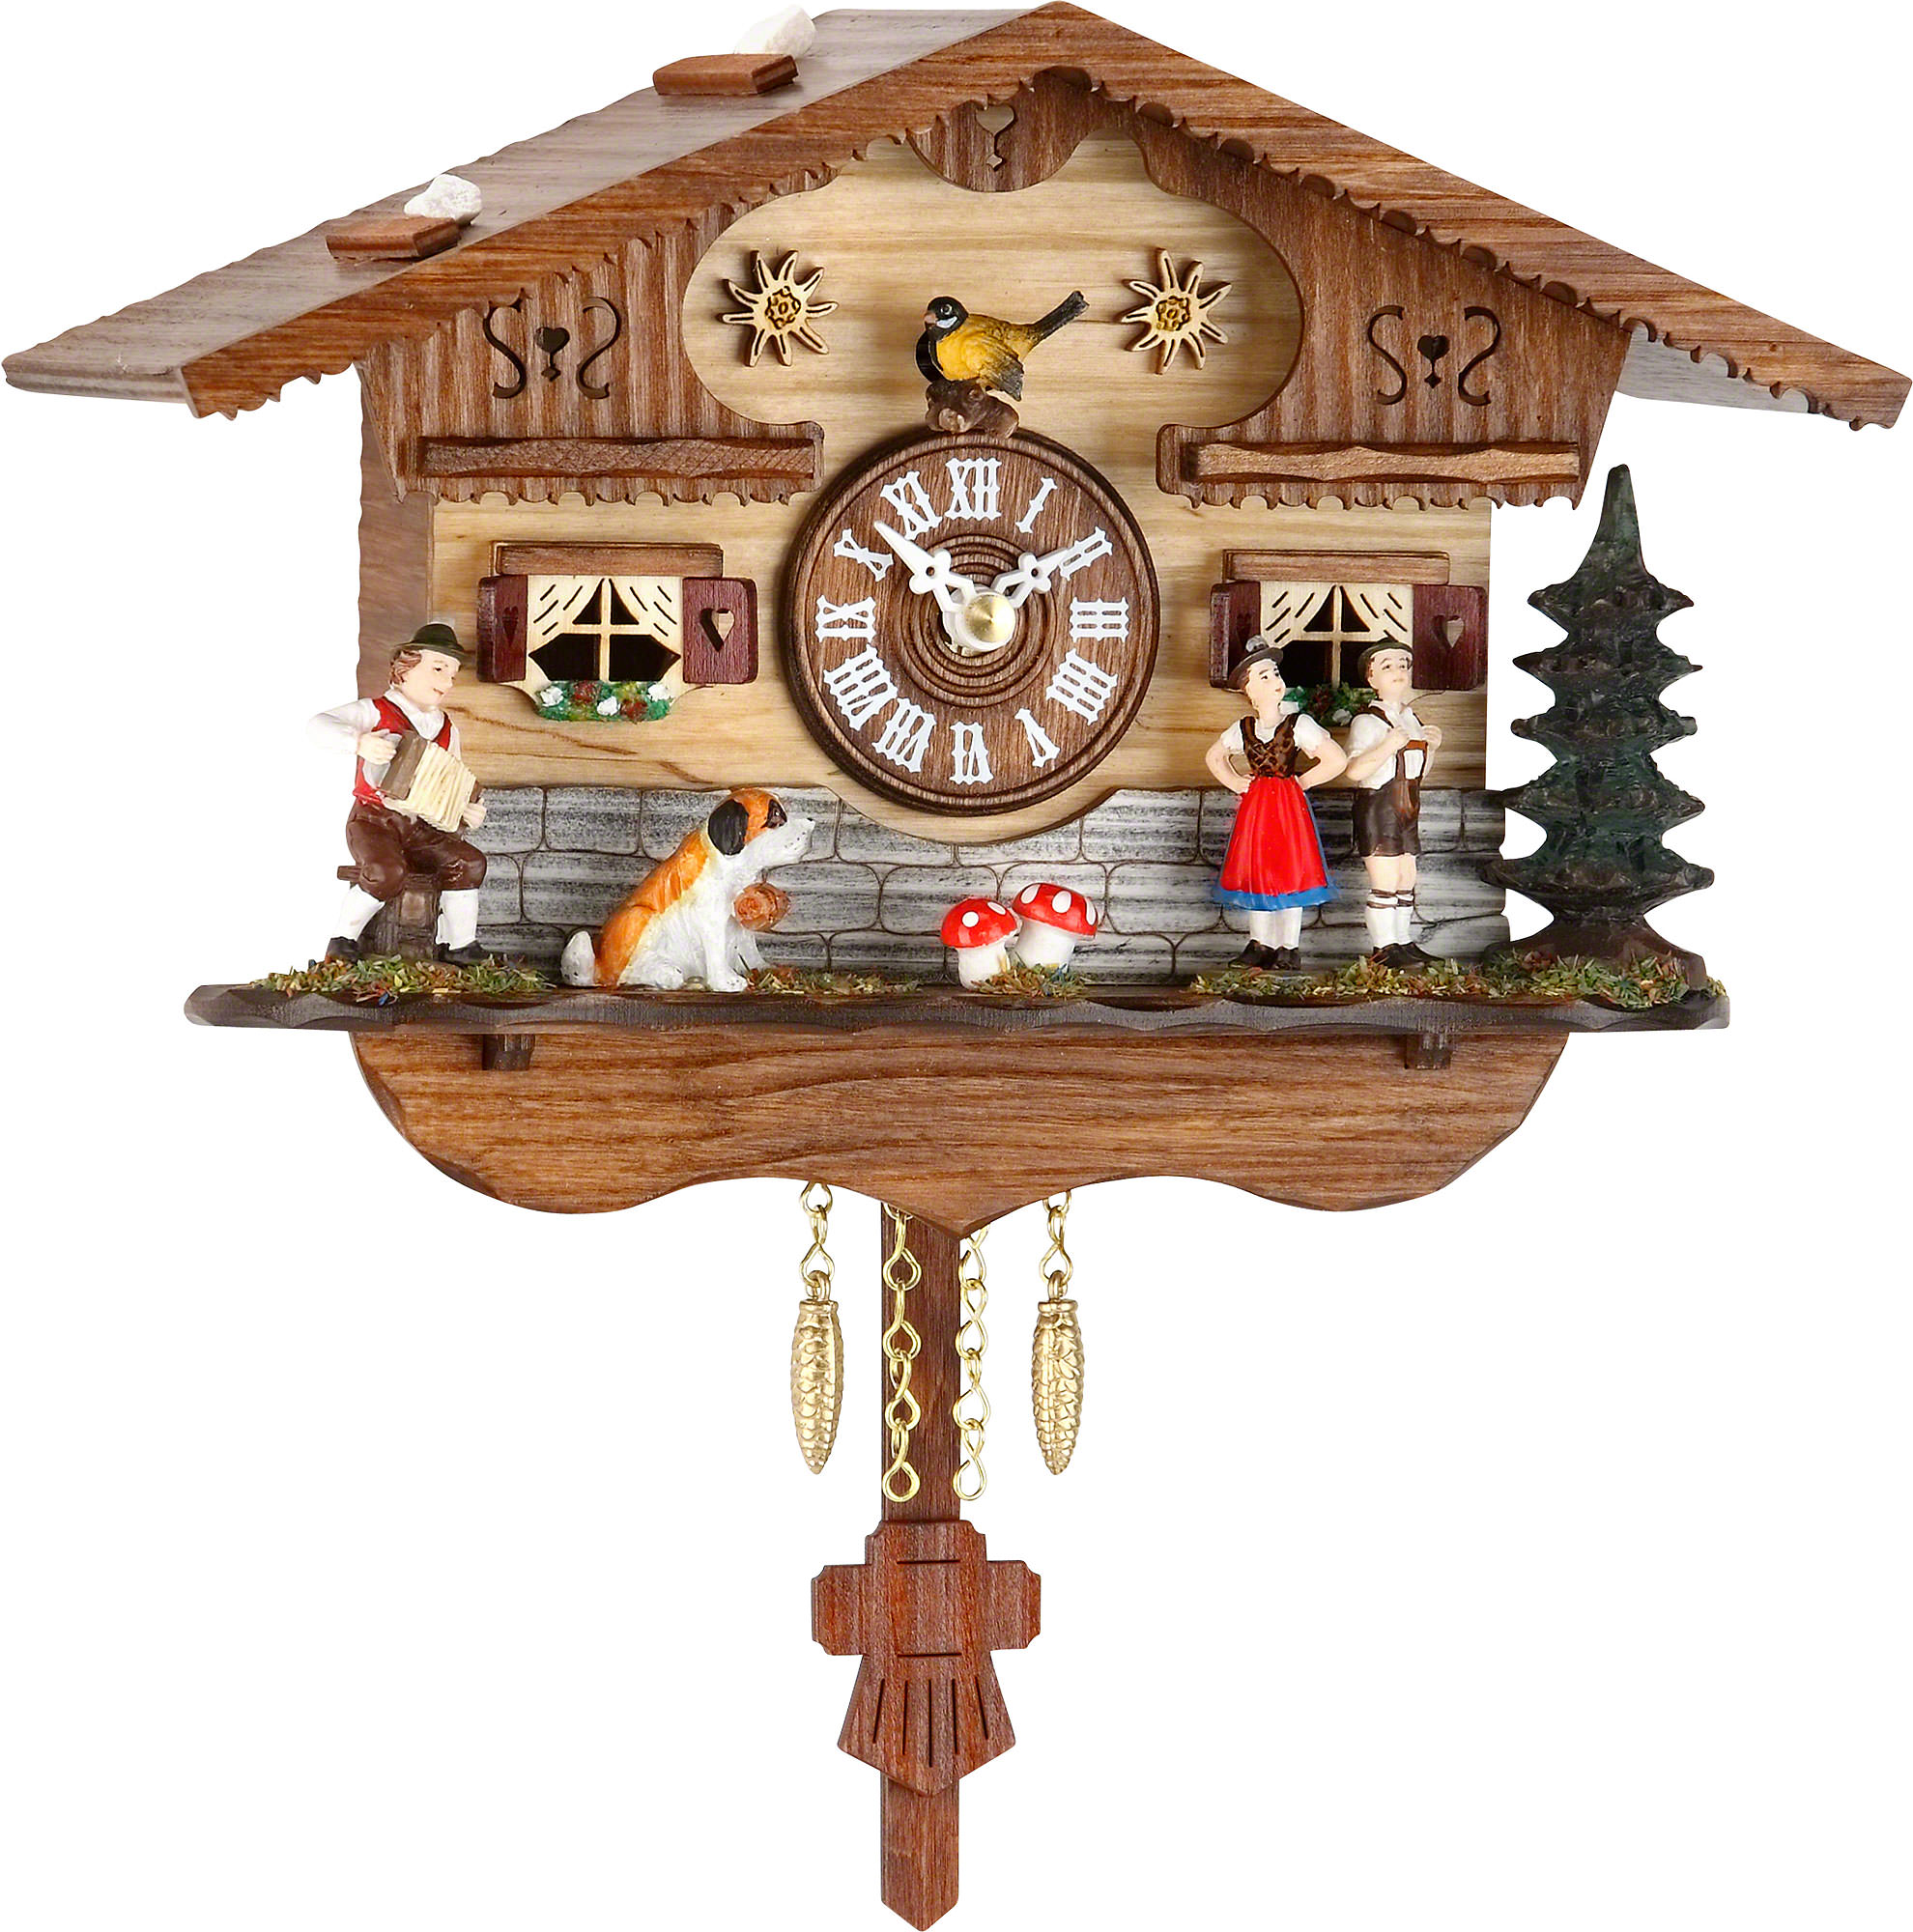 Cuckoo clock kuckulino quartz movement black forest pendulum clock style 16cm by trenkle uhren - Cuckoo clock pendulum ...